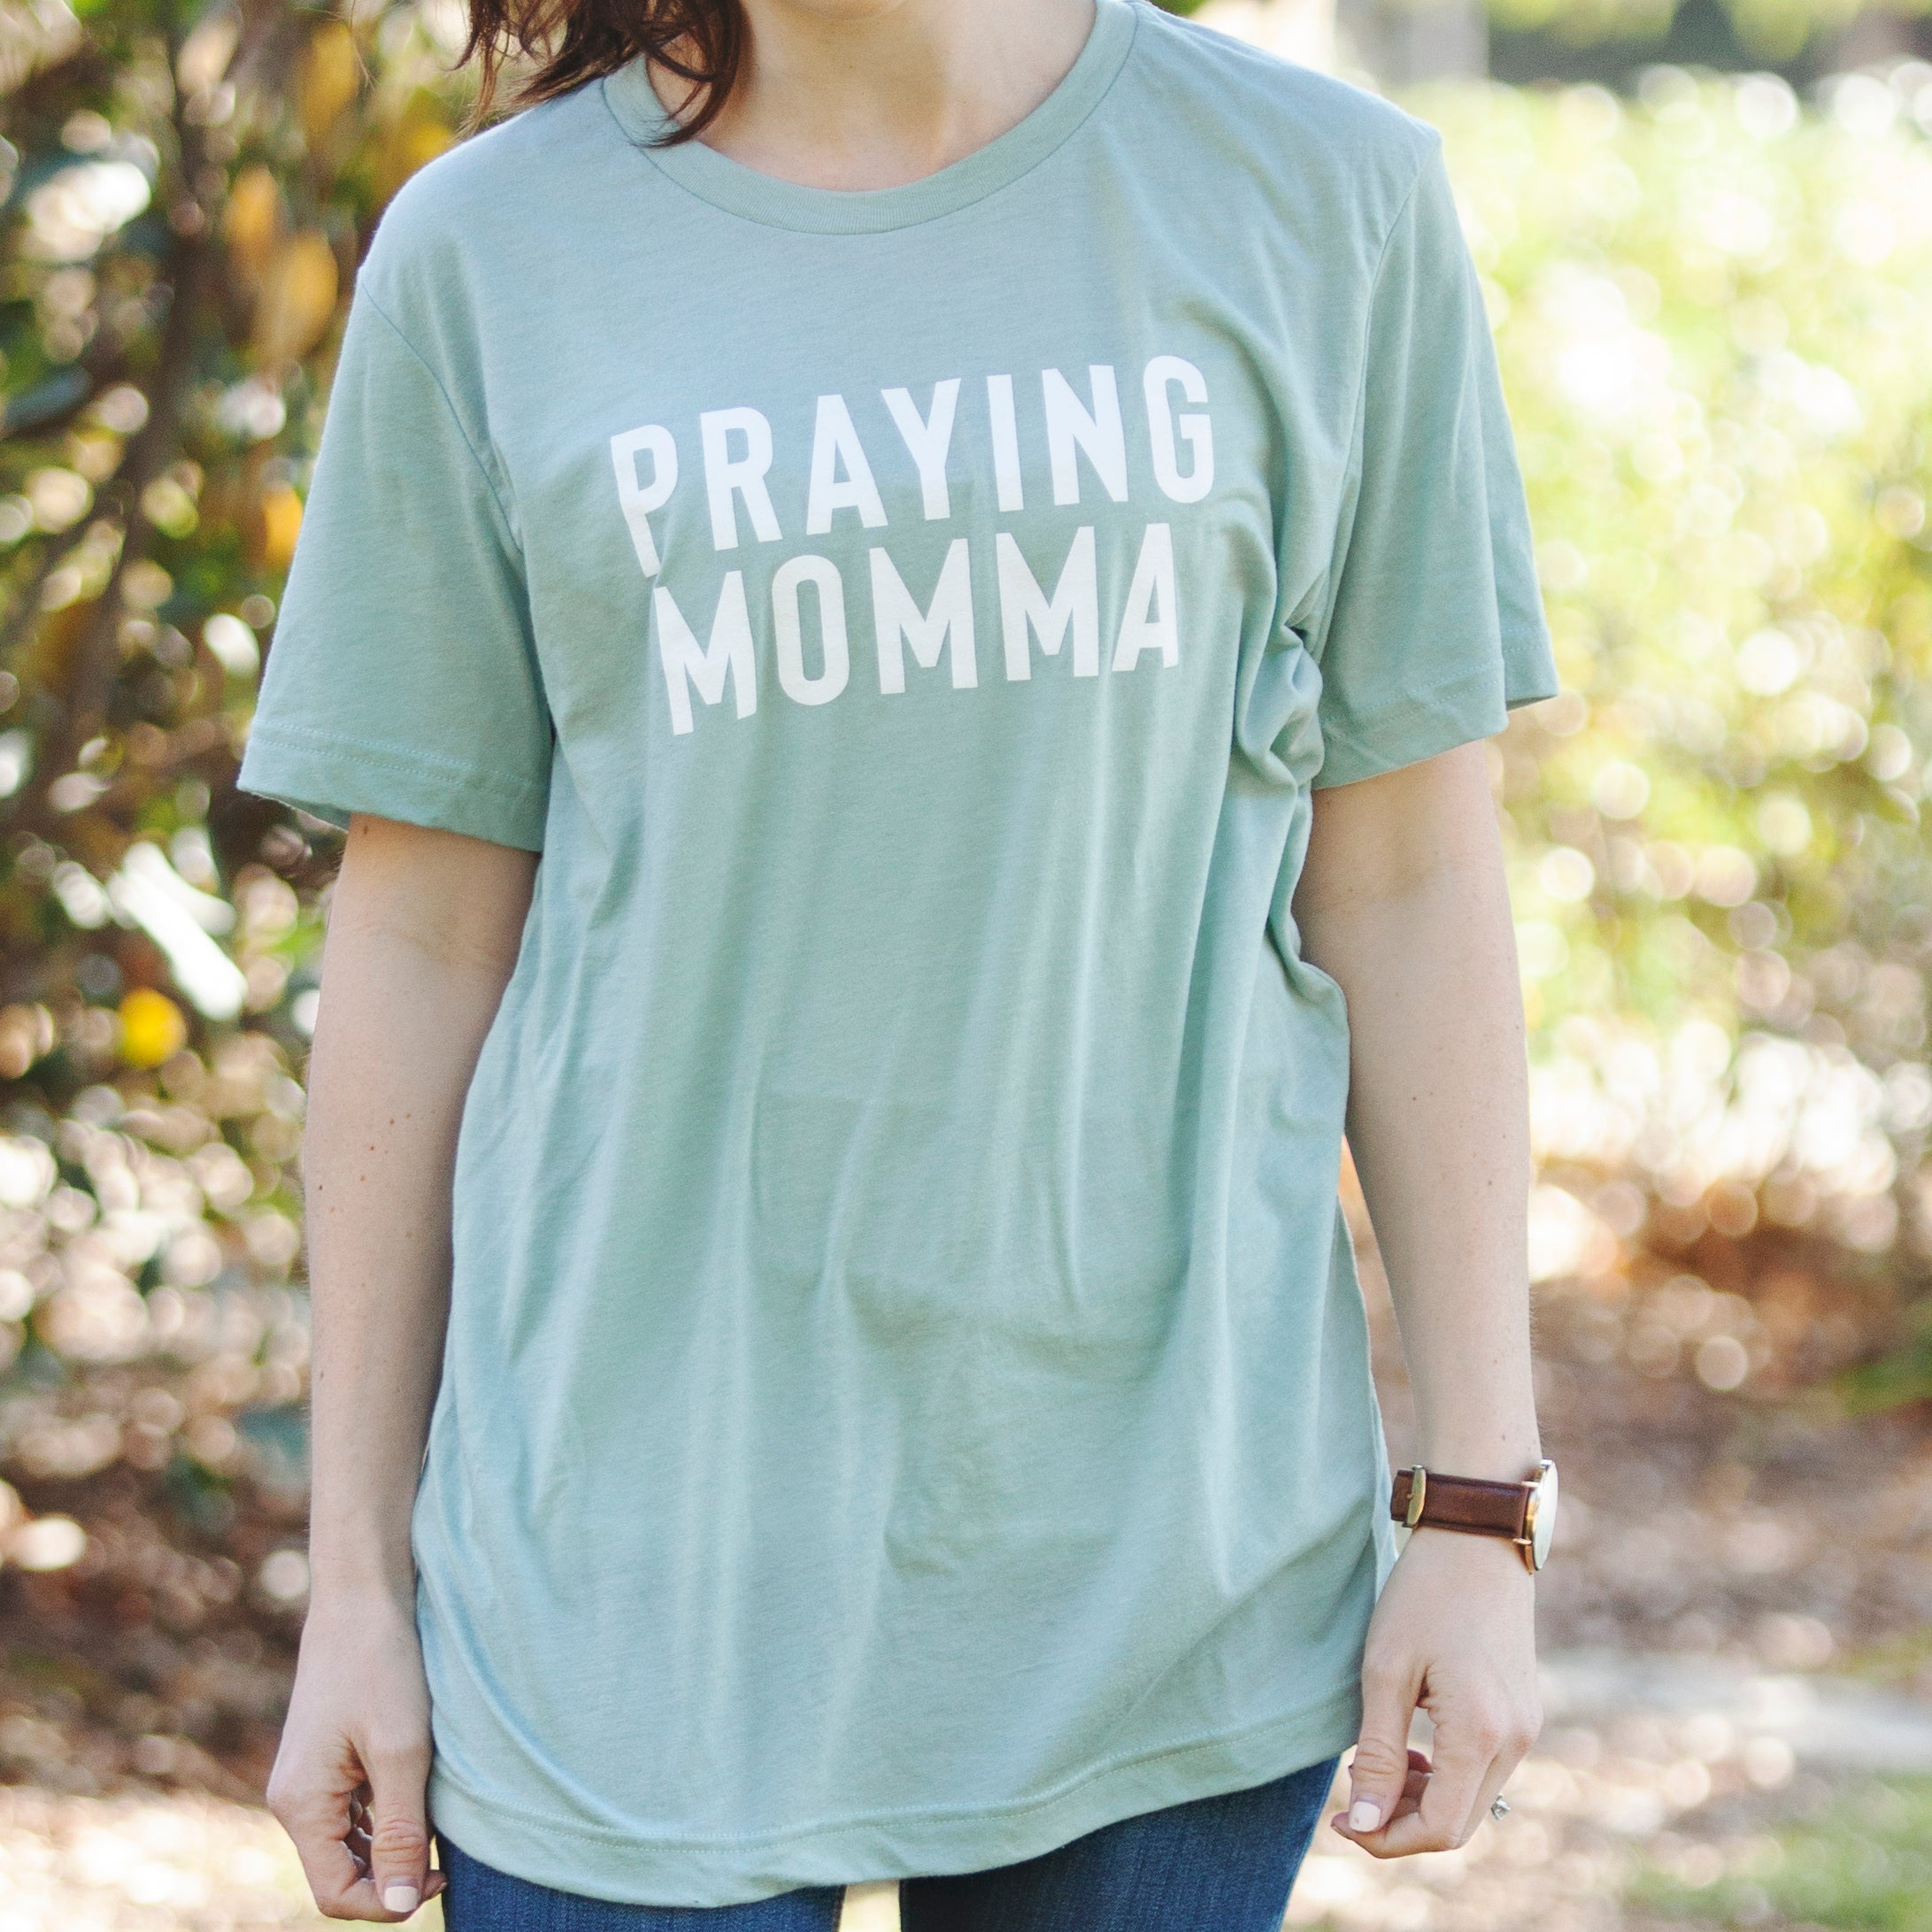 (PRE-ORDER) Praying Momma® T-Shirt | Dusty Blue